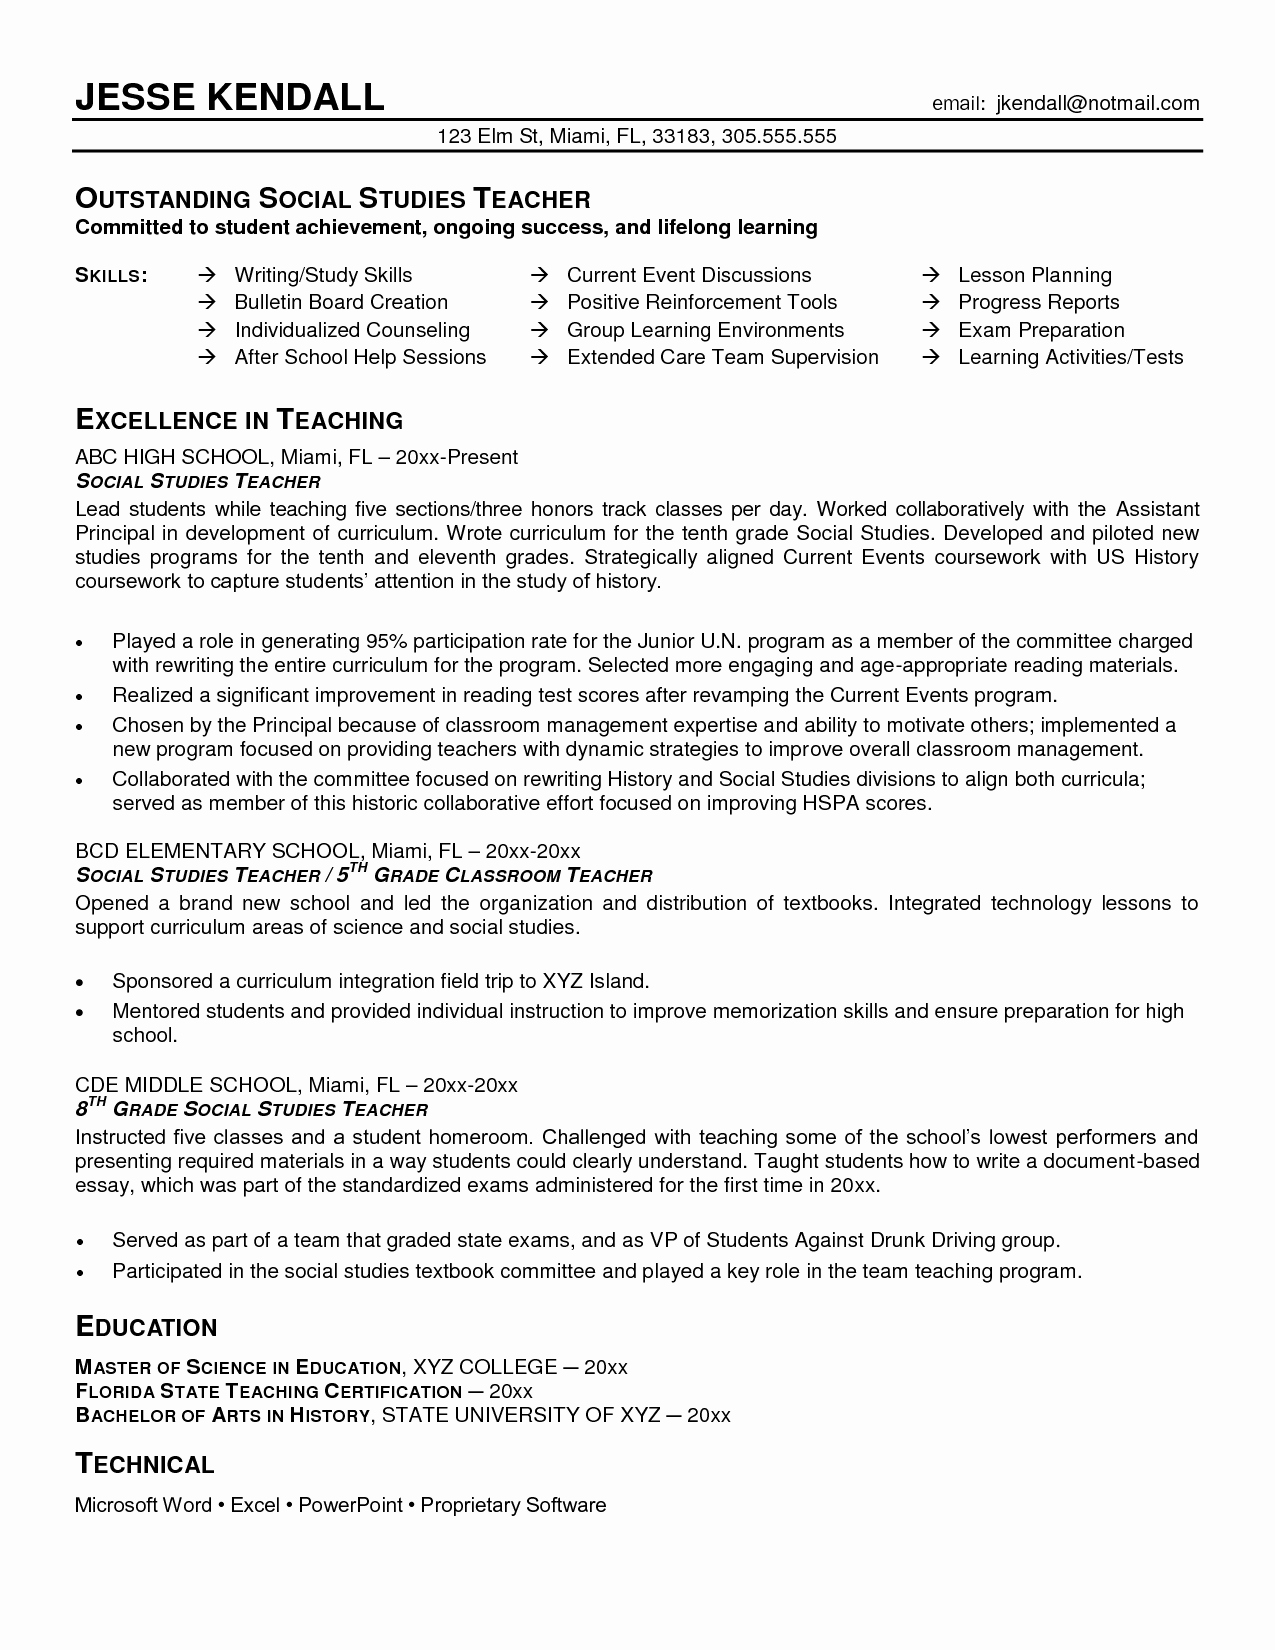 Examples Of Teaching Resumes Unique History Teacher Sample Resume Google Search